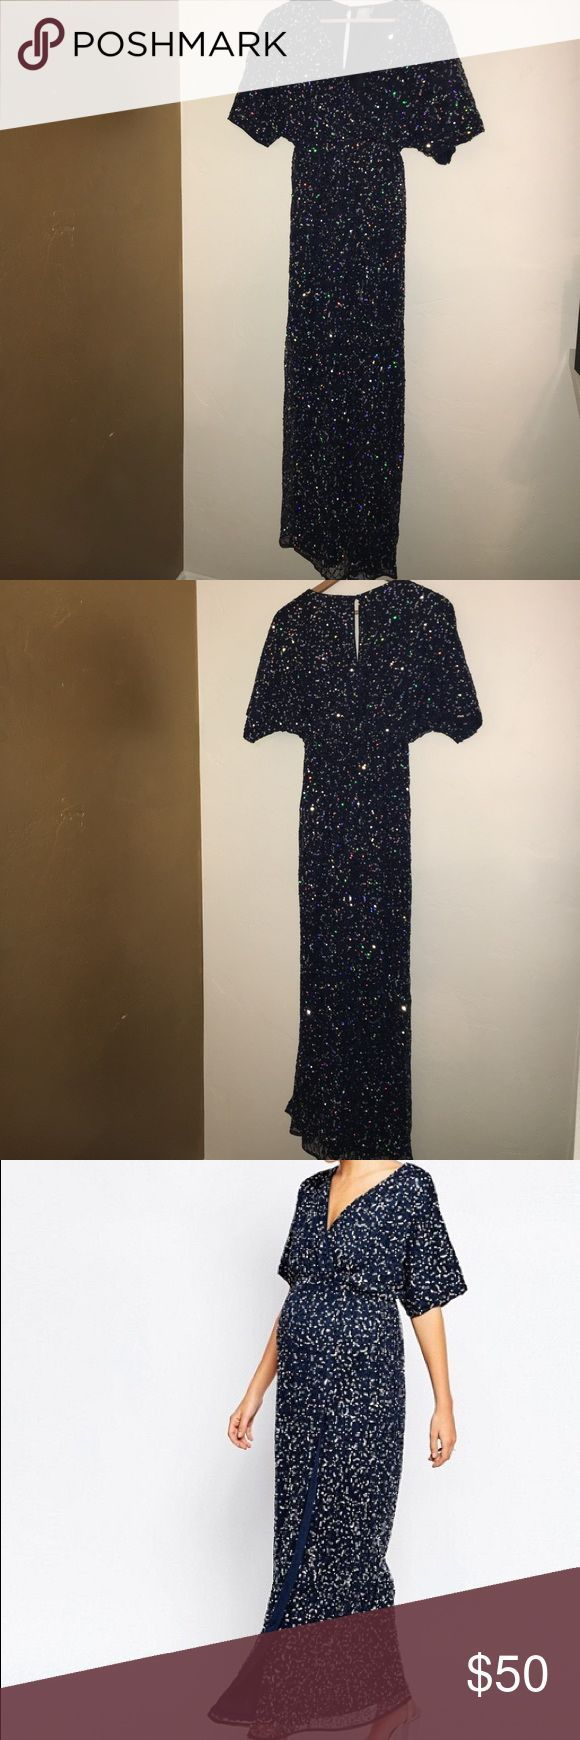 Cool Maternity Dress Asos Sequin Maxi Kimono Dress Midnight blue with silver sequins, this dress is a... Check more at http://mydresses.ga/fashion/maternity-dress-asos-sequin-maxi-kimono-dress-midnight-blue-with-silver-sequins-this-dress-is-a/